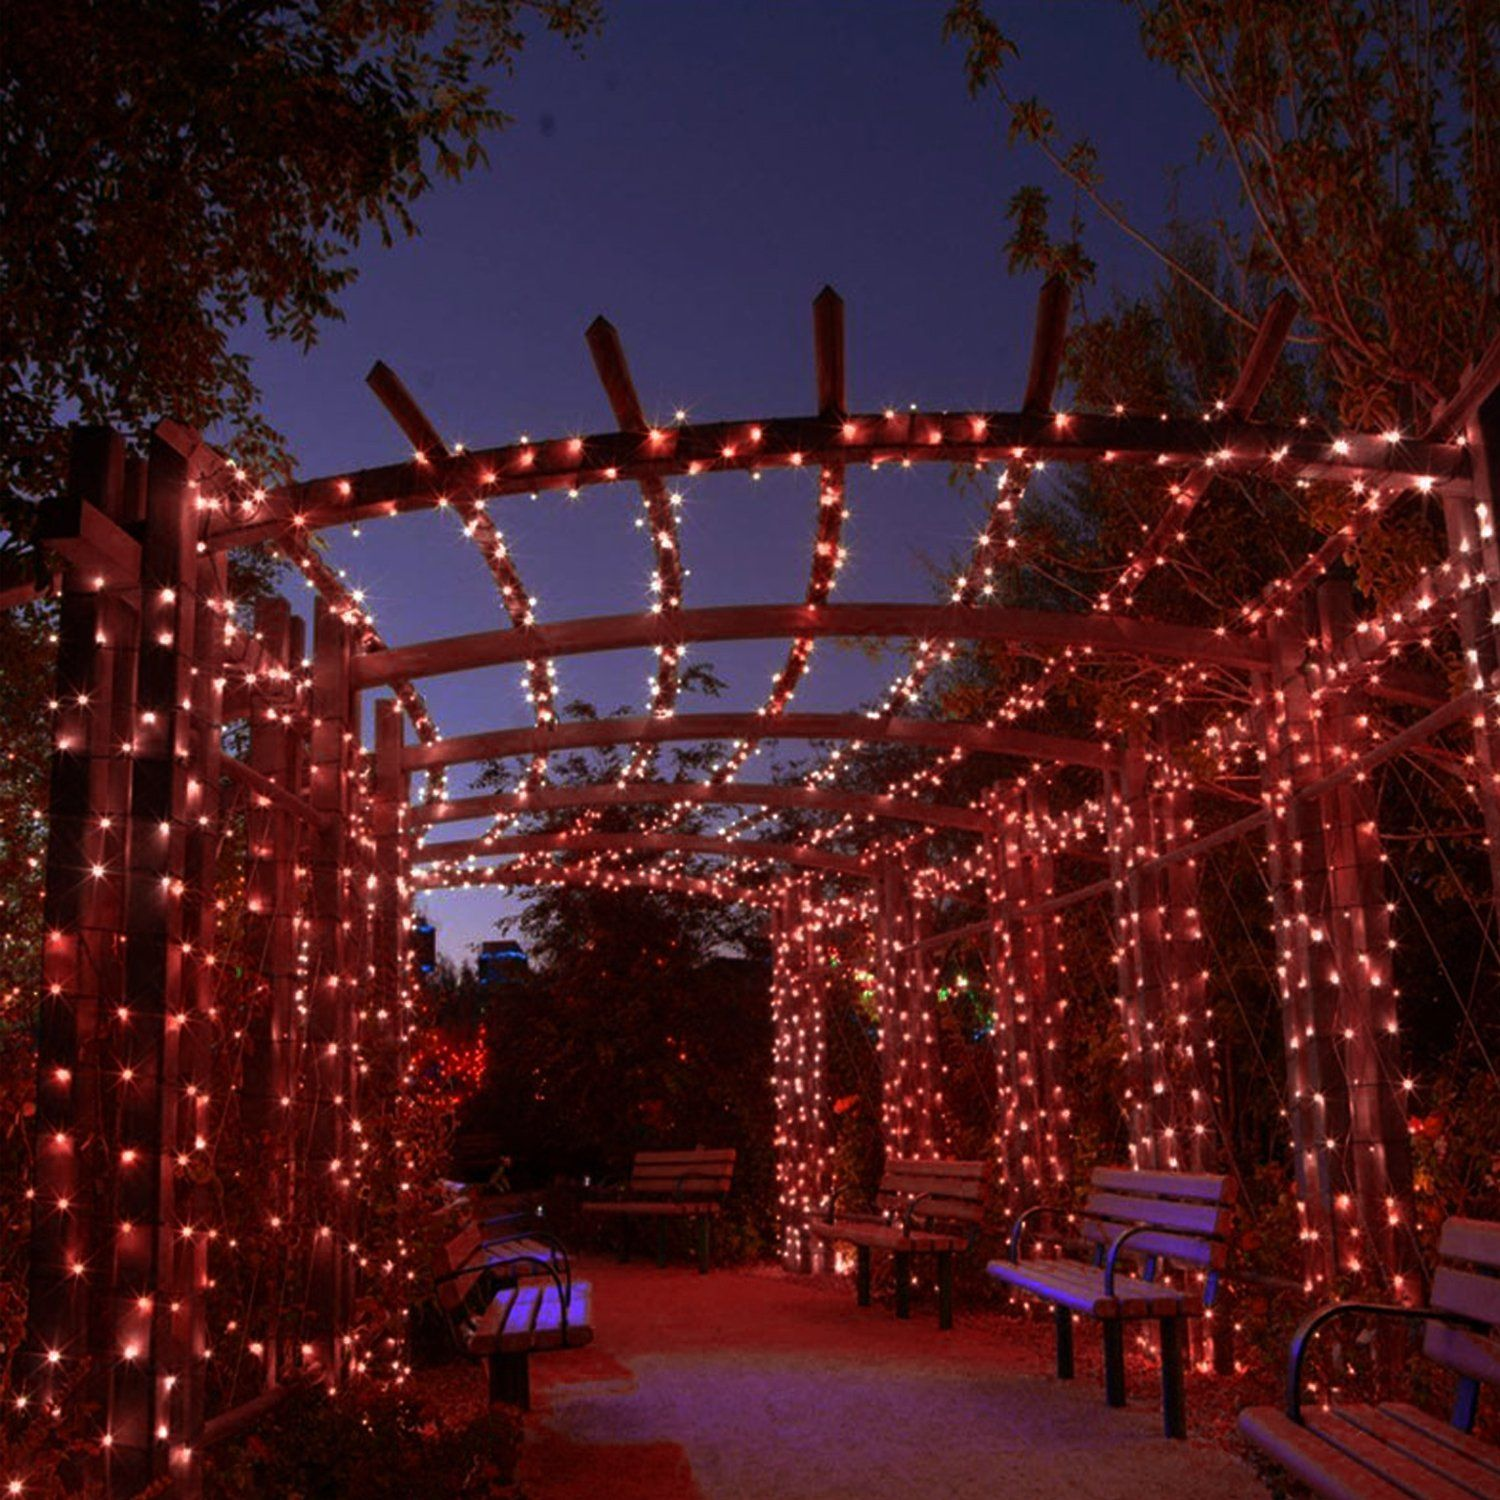 Usa Neon King Christmas Lights Indoor And Outdoor 33ft 120v Ul Certified 100 Led Tree Lights For Lawn Garden Home Pa Holiday Red Christmas Lights Tree Lighting